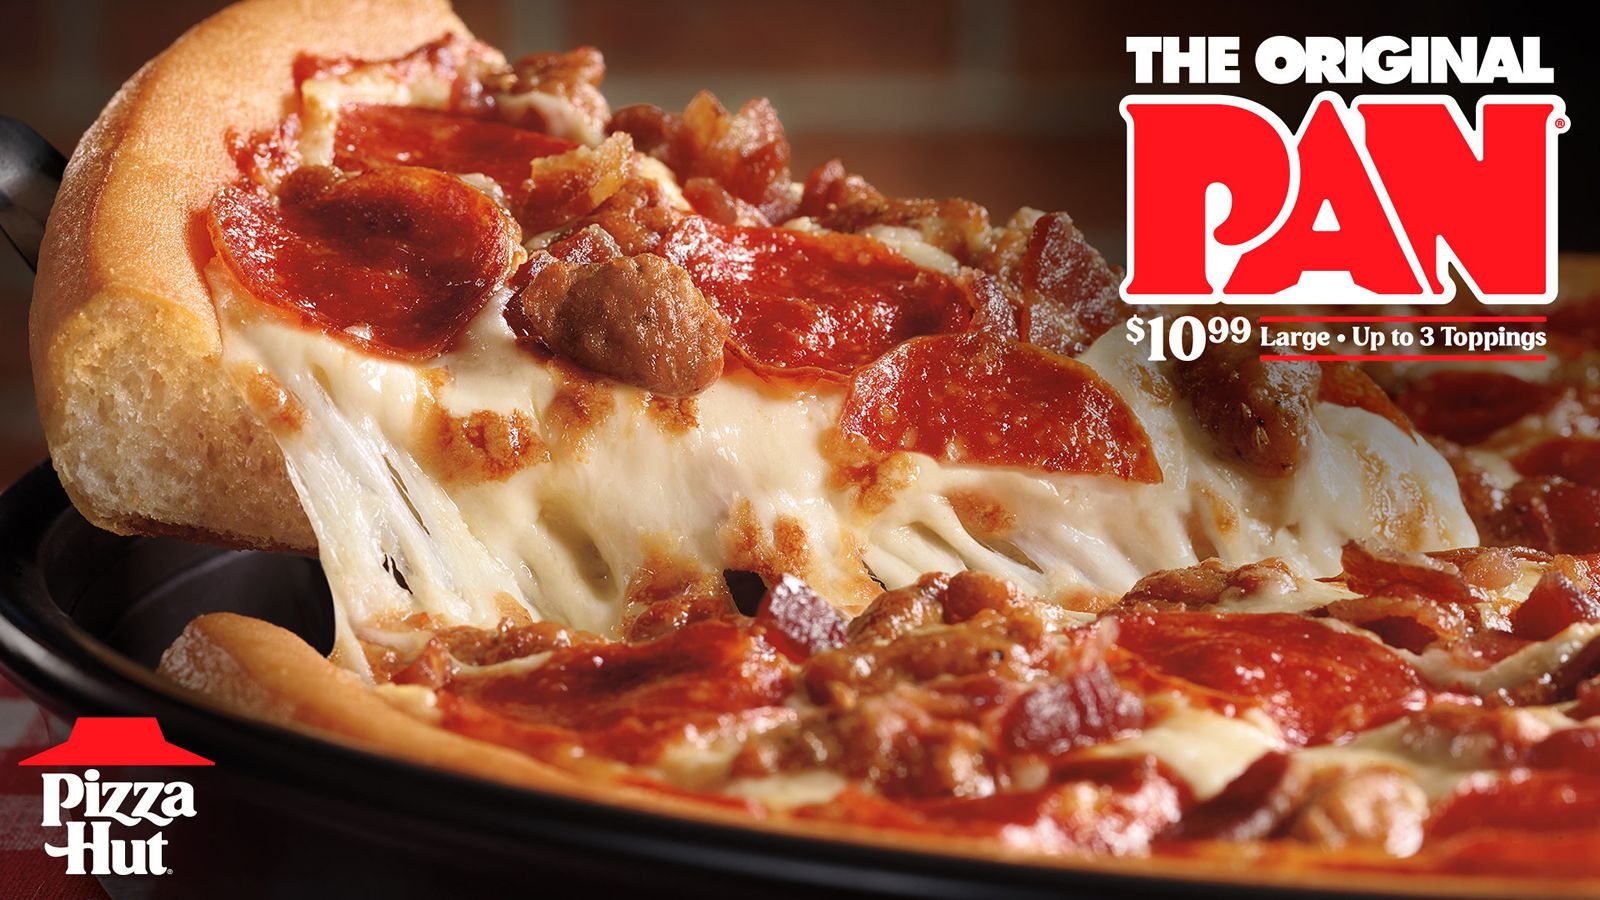 Pizza Hut Serves Up Its Often Imitated, Never Duplicated Original Pan Pizza At An Unbeatable Price